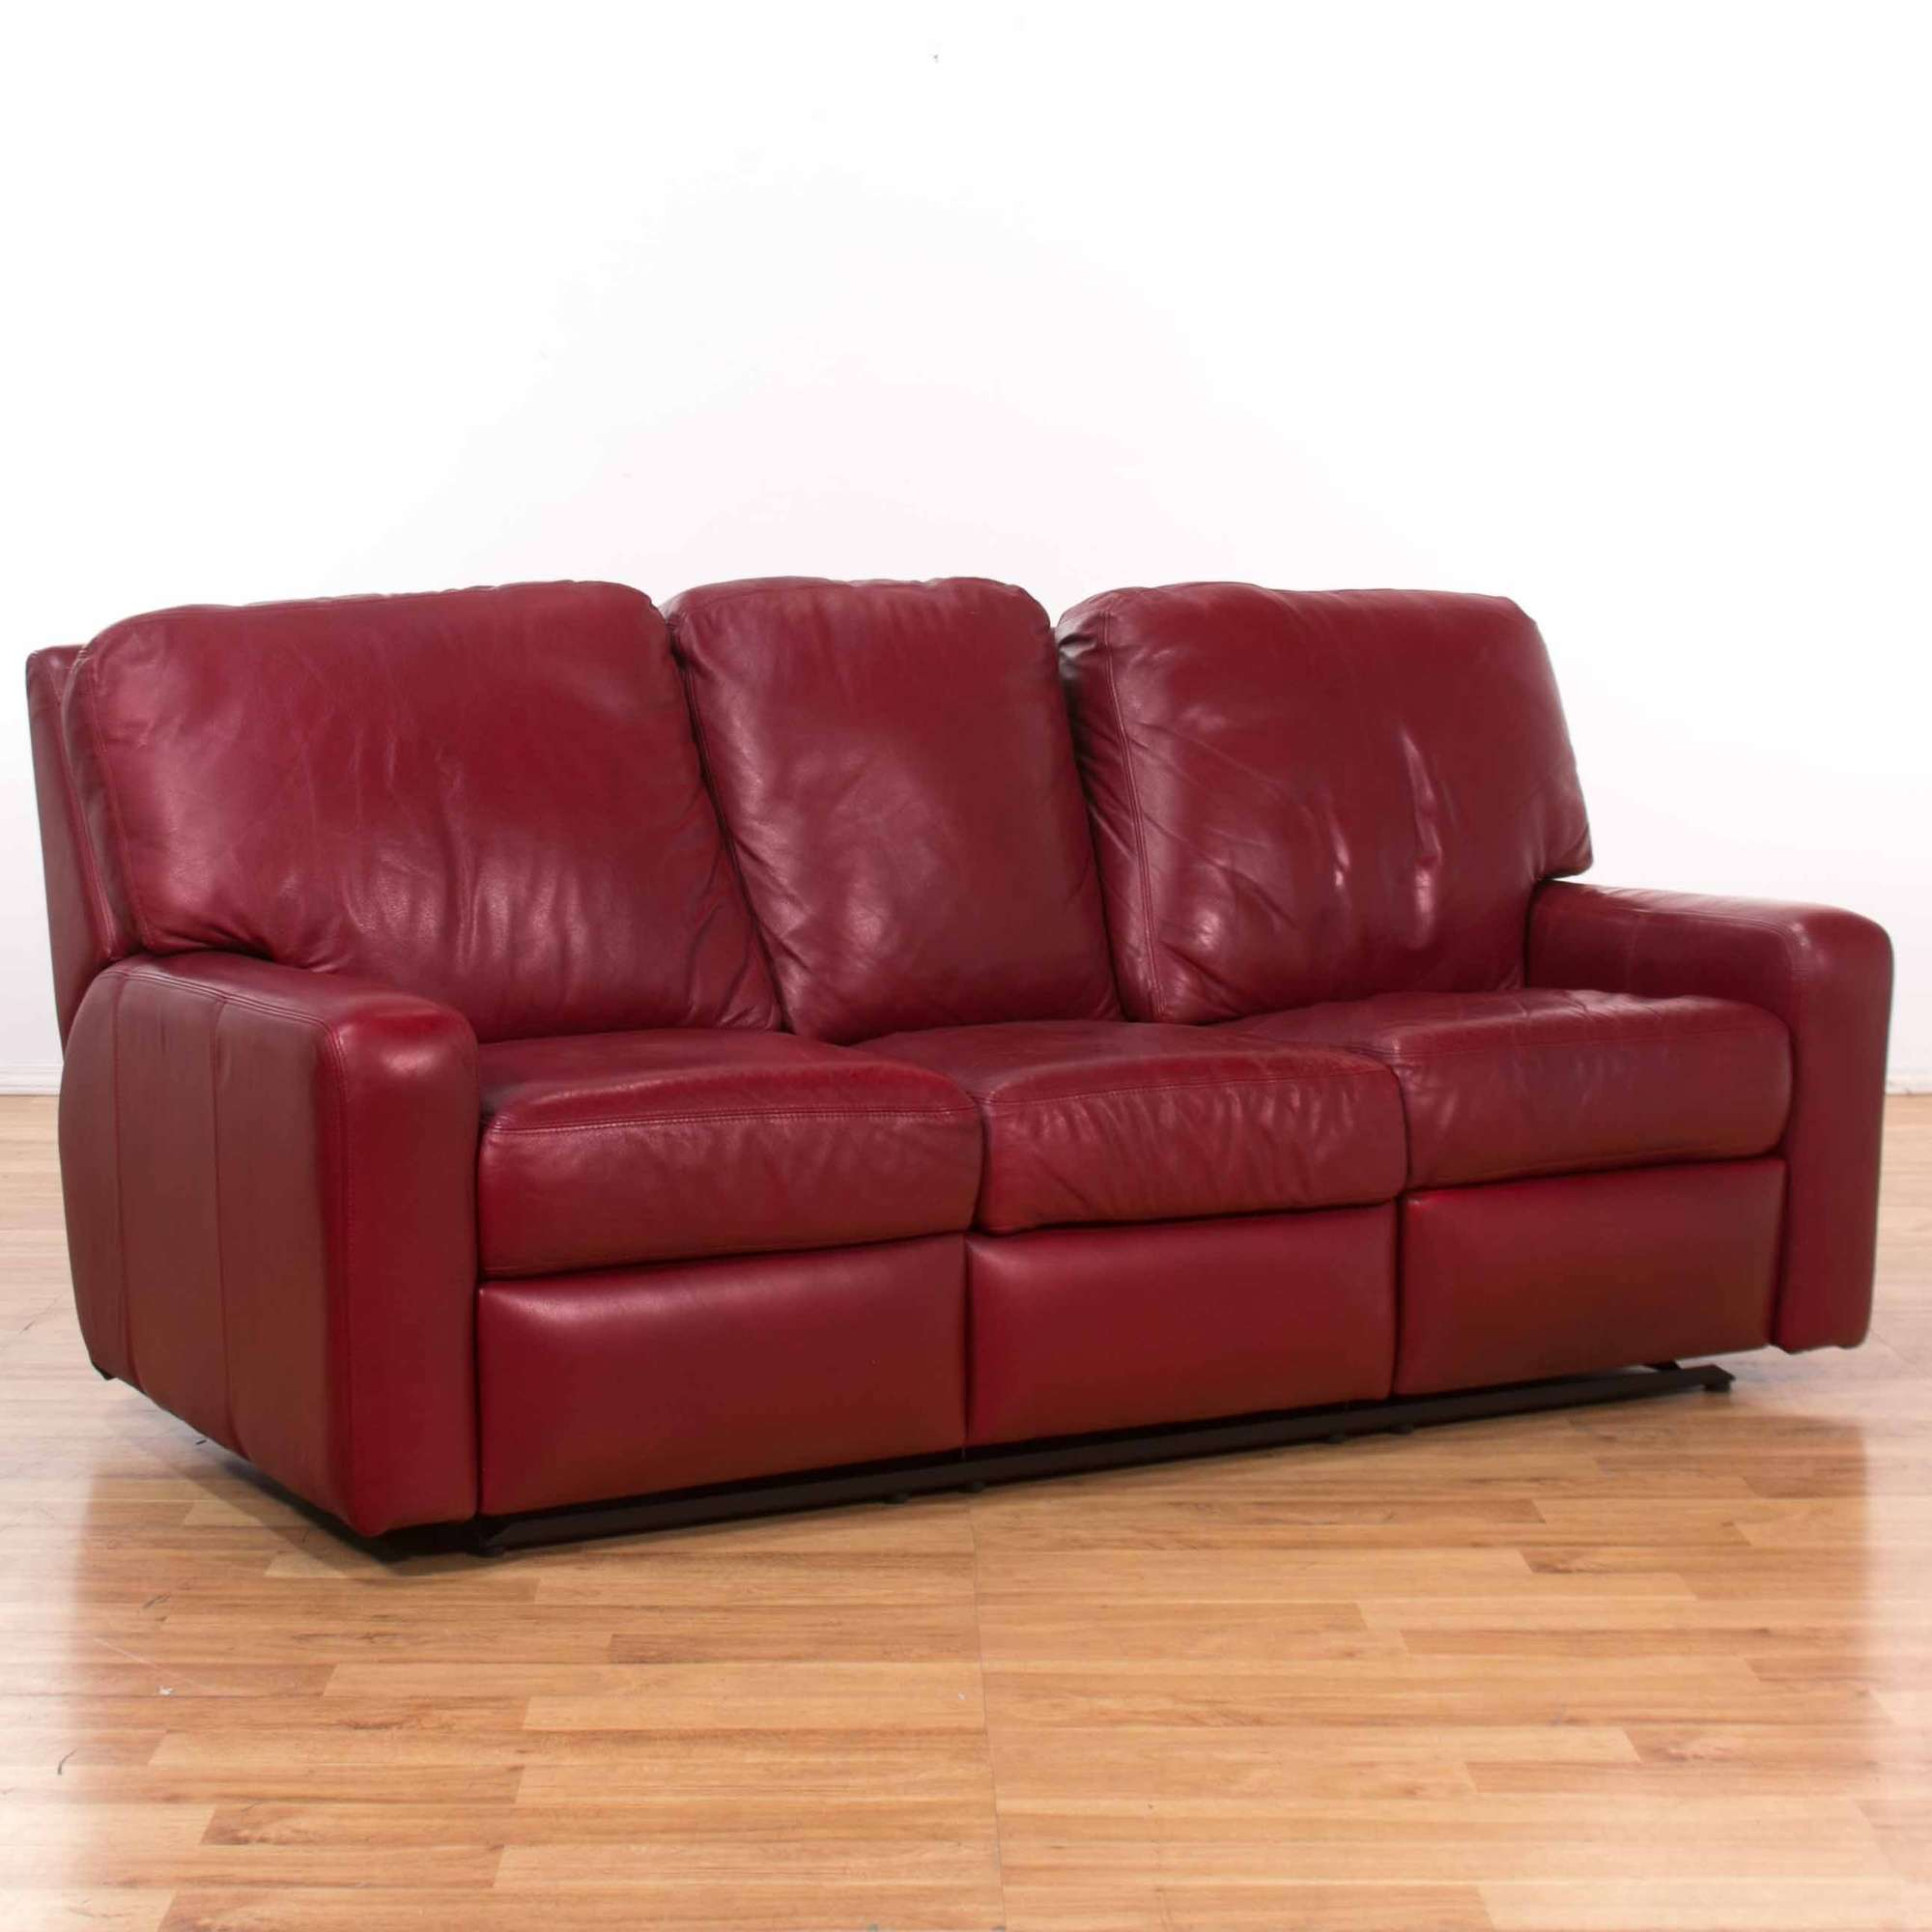 Outstanding Arizona Leather Red Reclining Sofa Loveseat Vintage Ocoug Best Dining Table And Chair Ideas Images Ocougorg